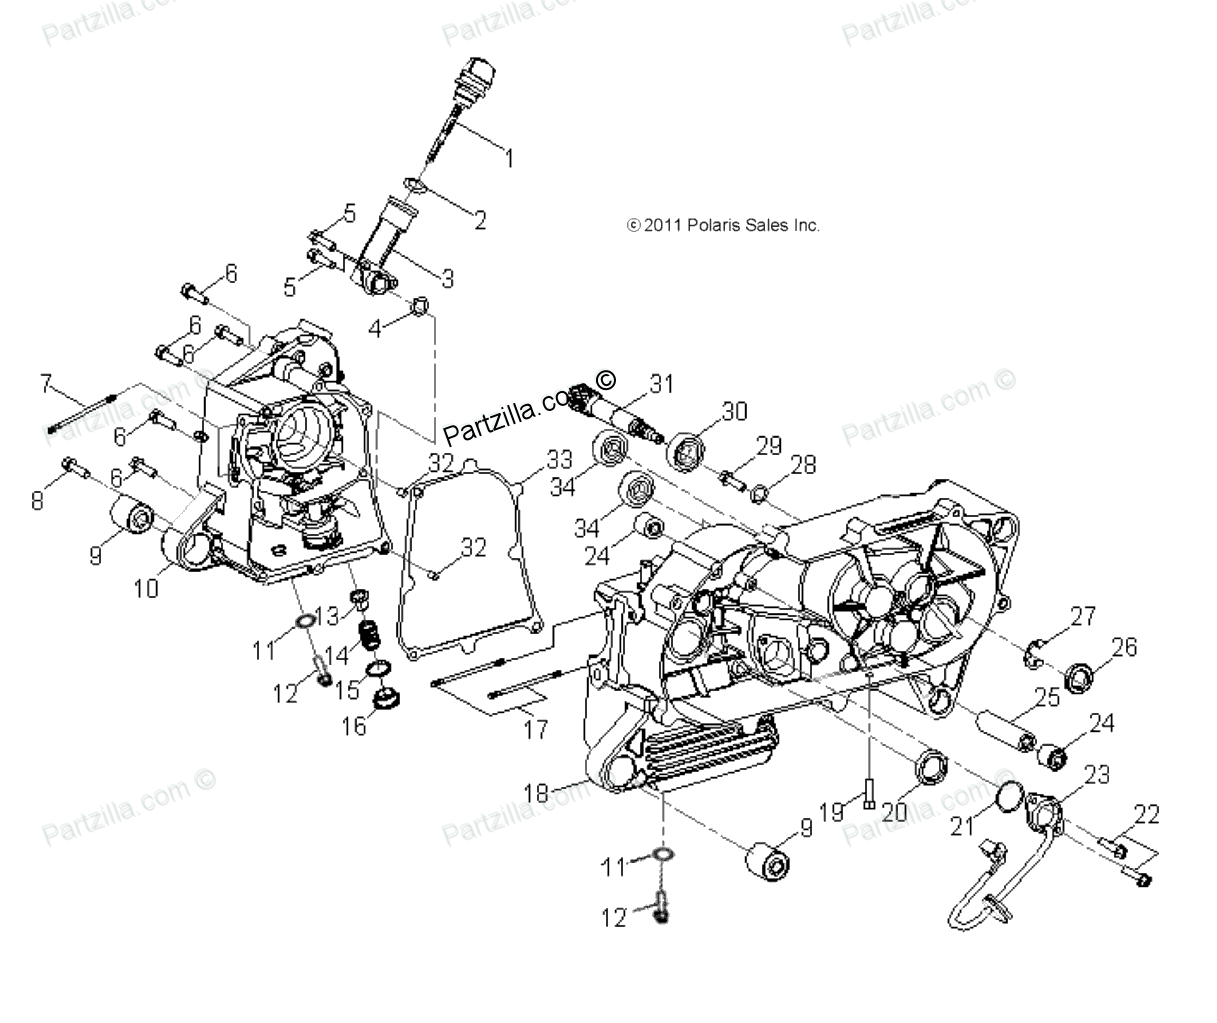 hight resolution of polaris outlaw 50 idle rev limit wiring diagram